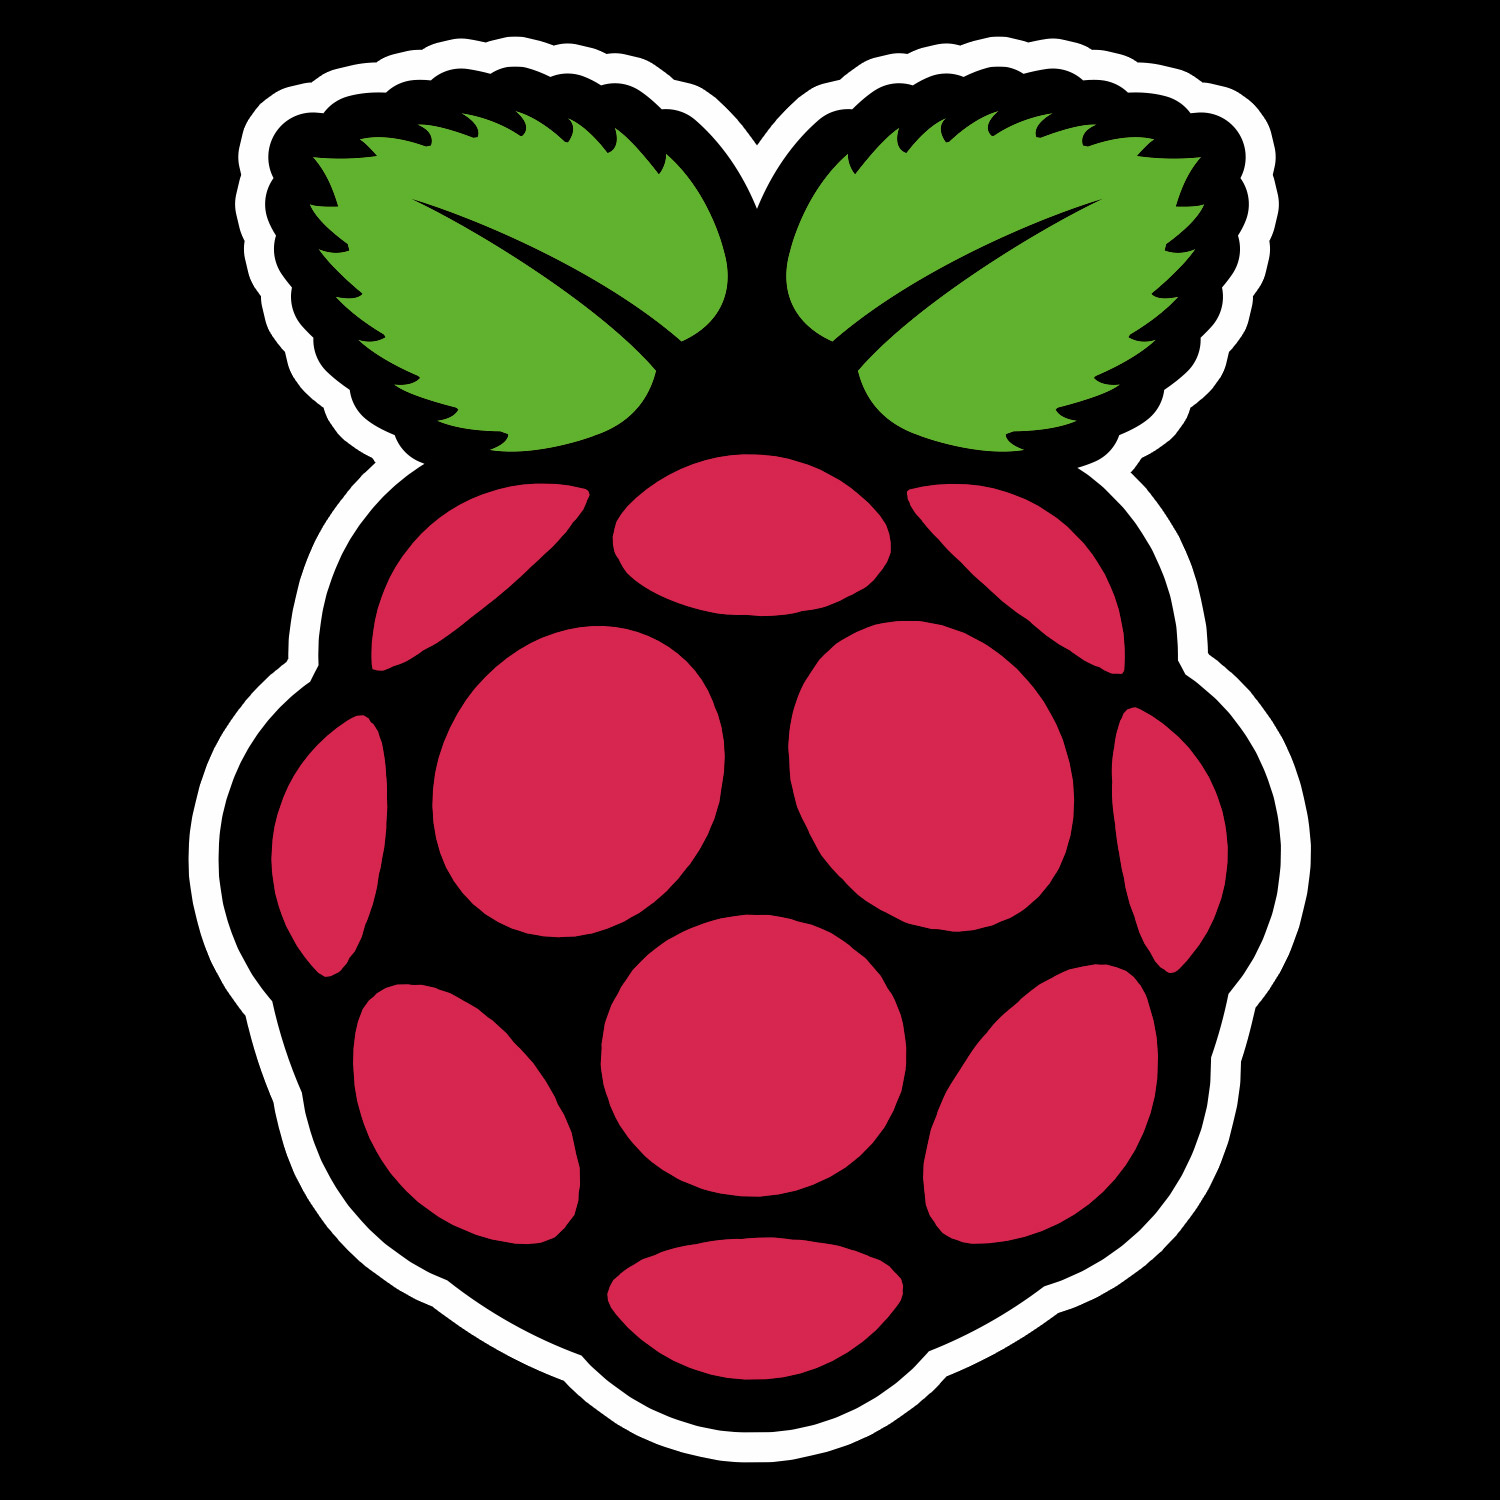 raspberryPi-logo-black-backer